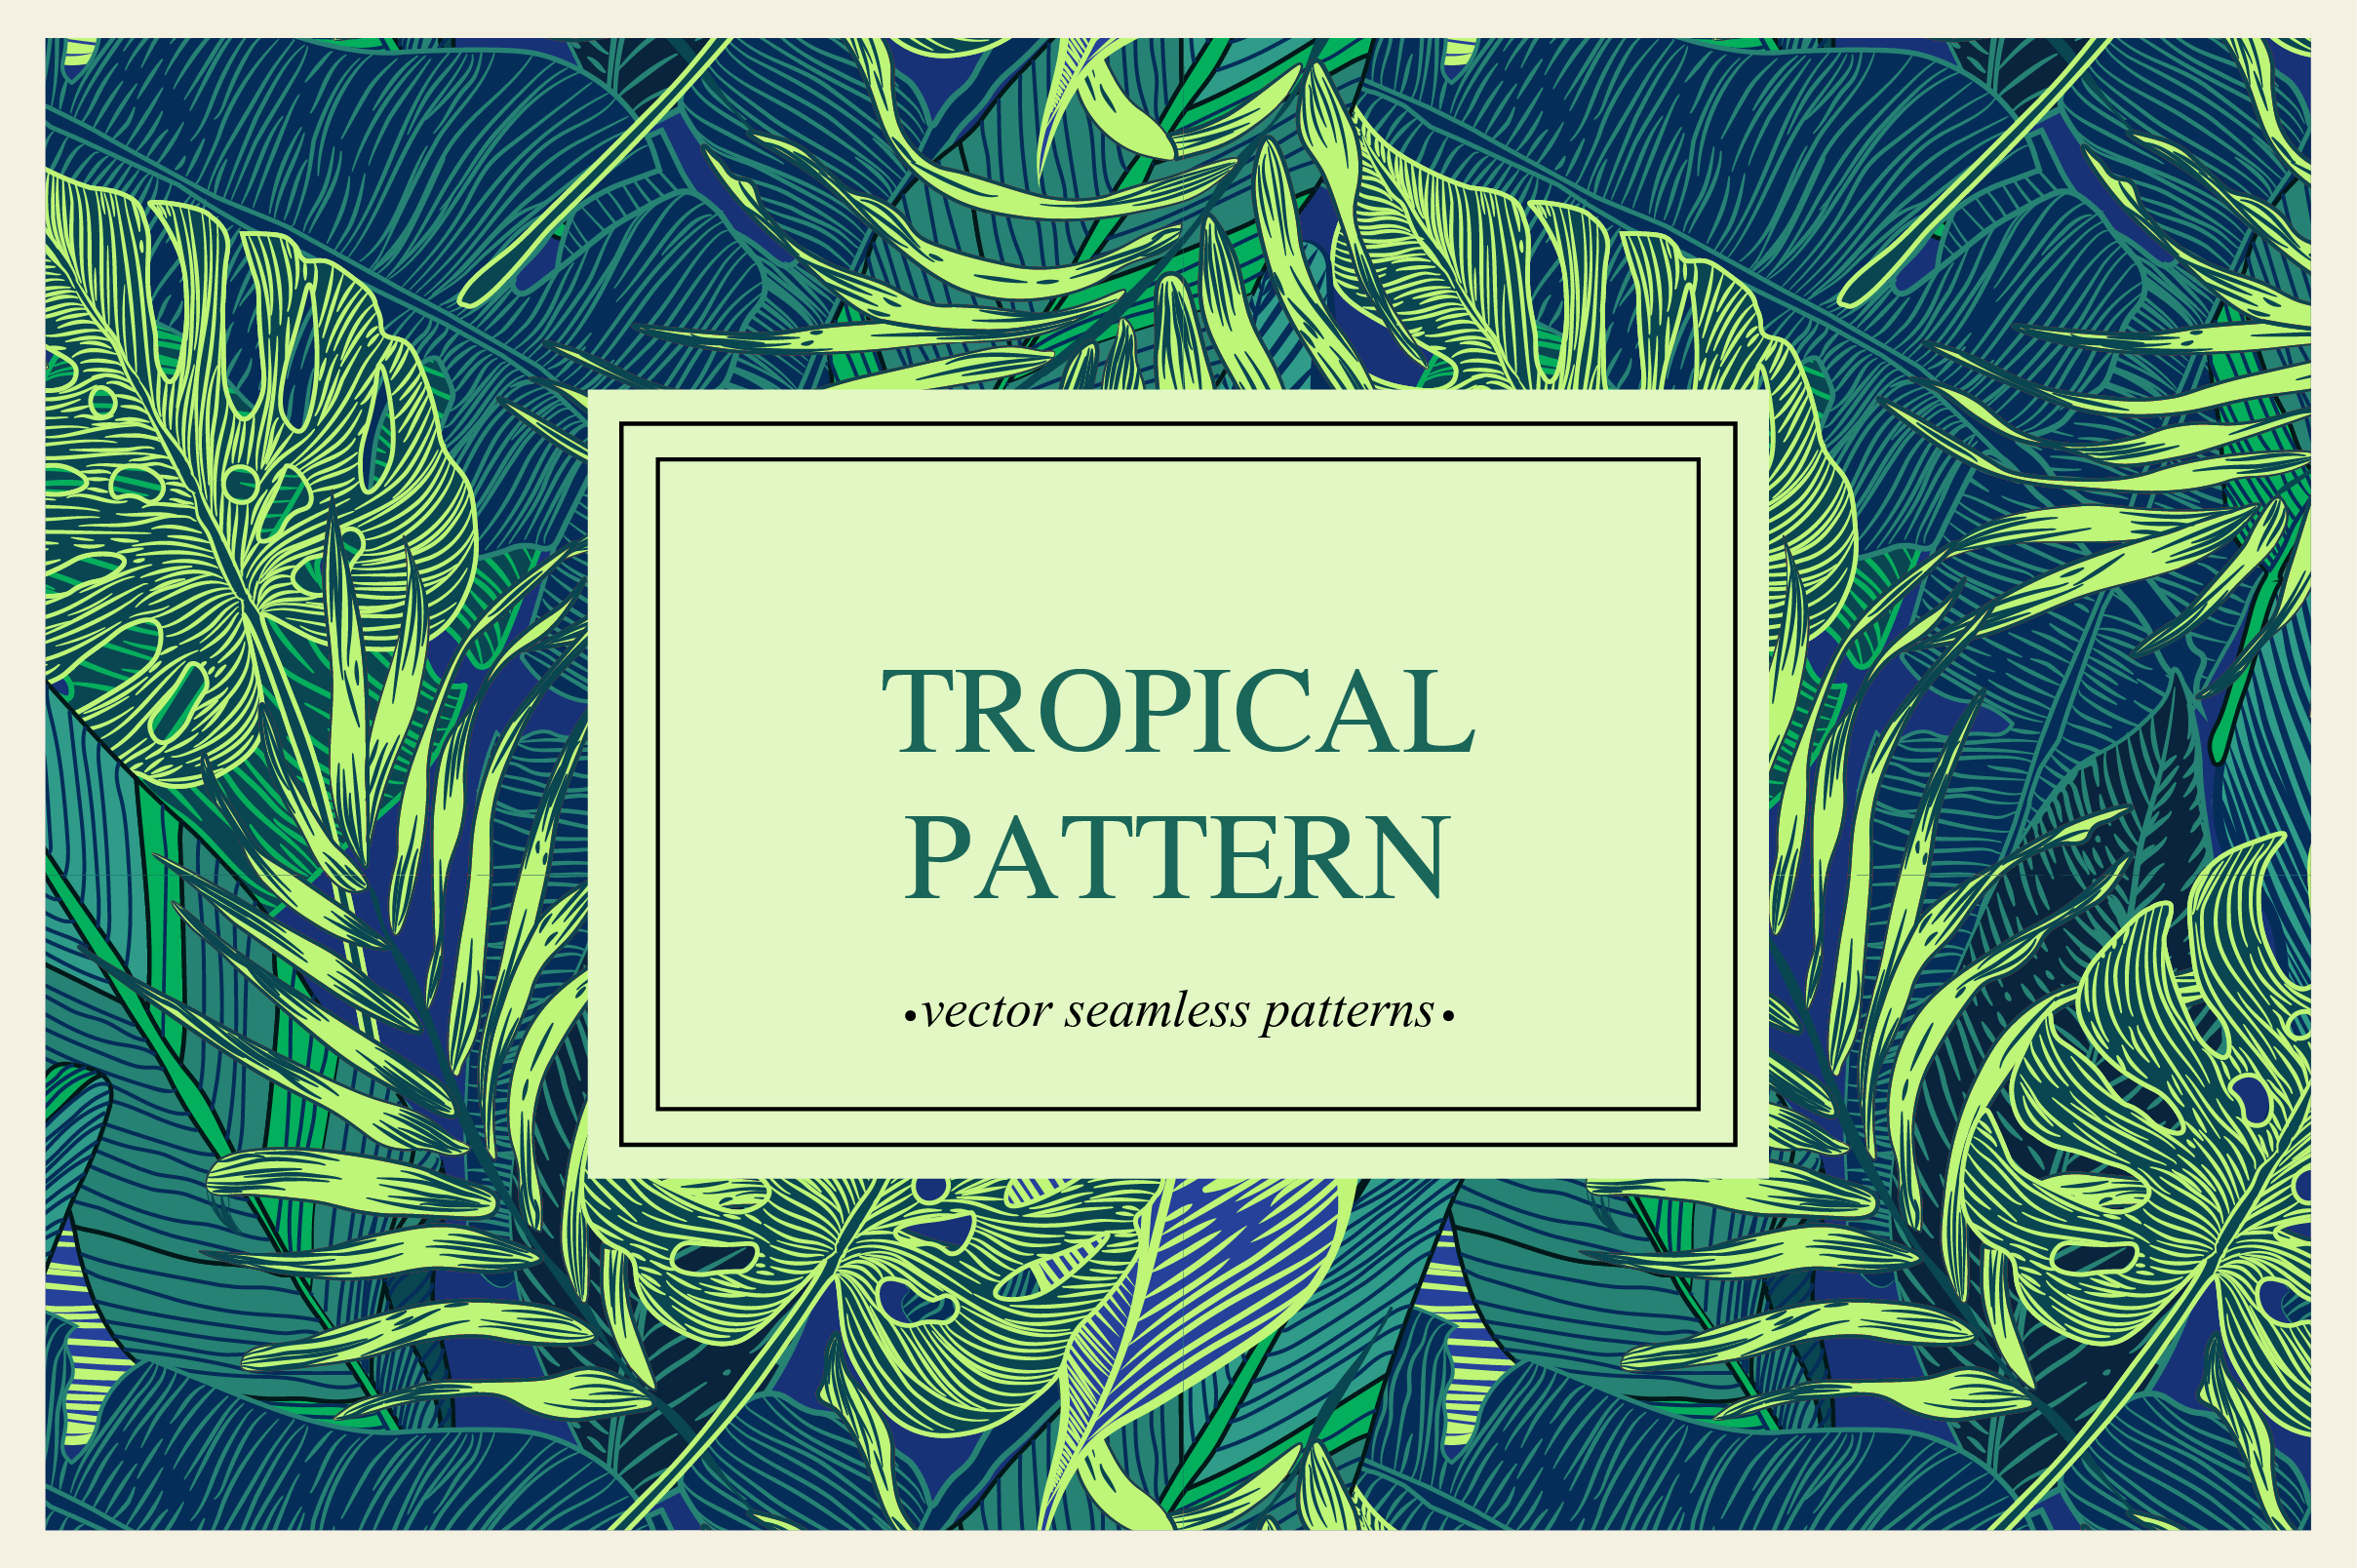 Tropical pattern example image 5